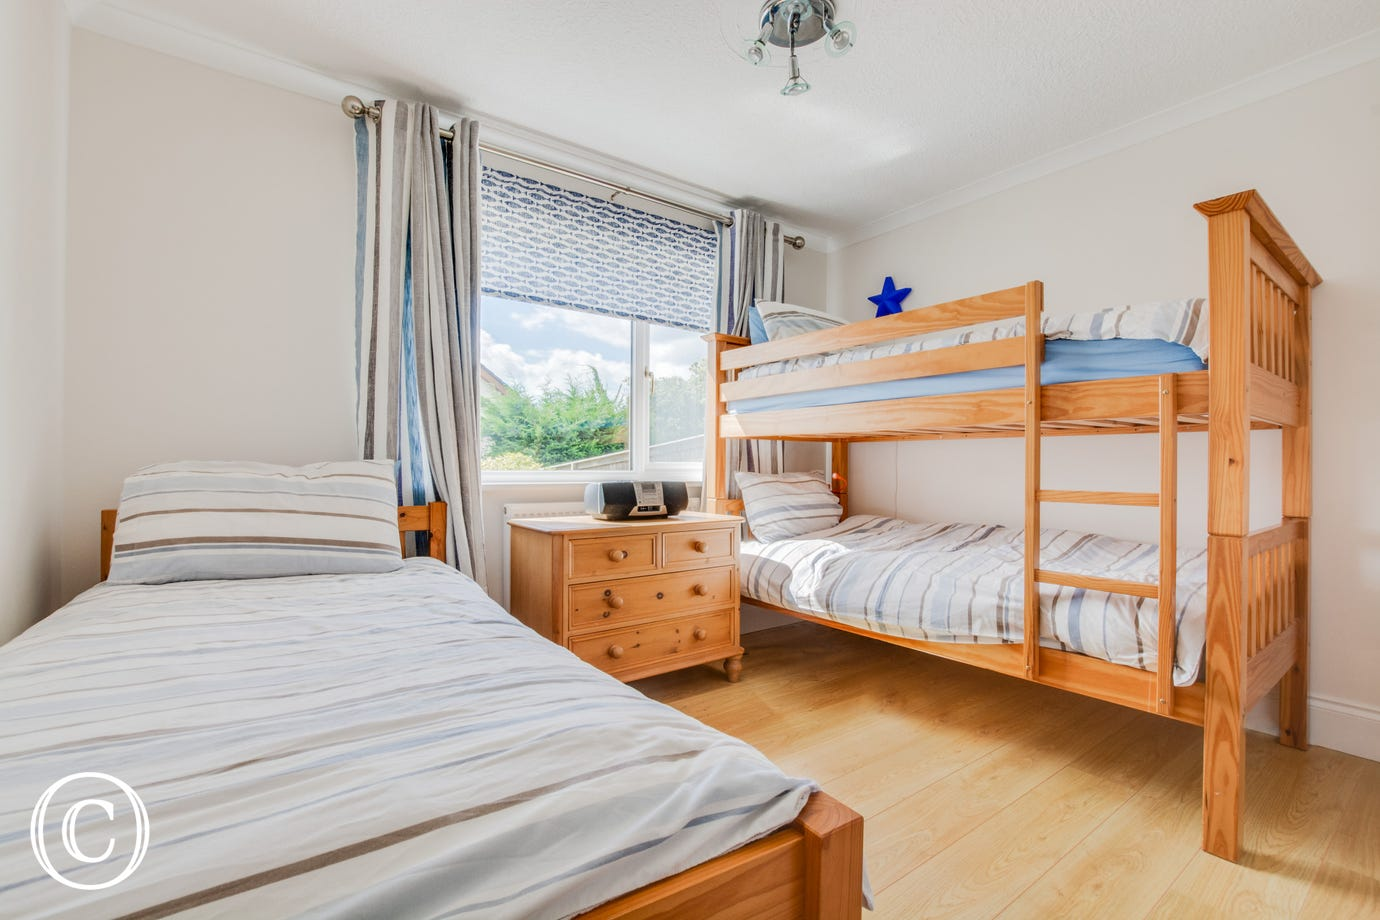 An ideal bedroom for the children with a set of bunk beds and a separate single